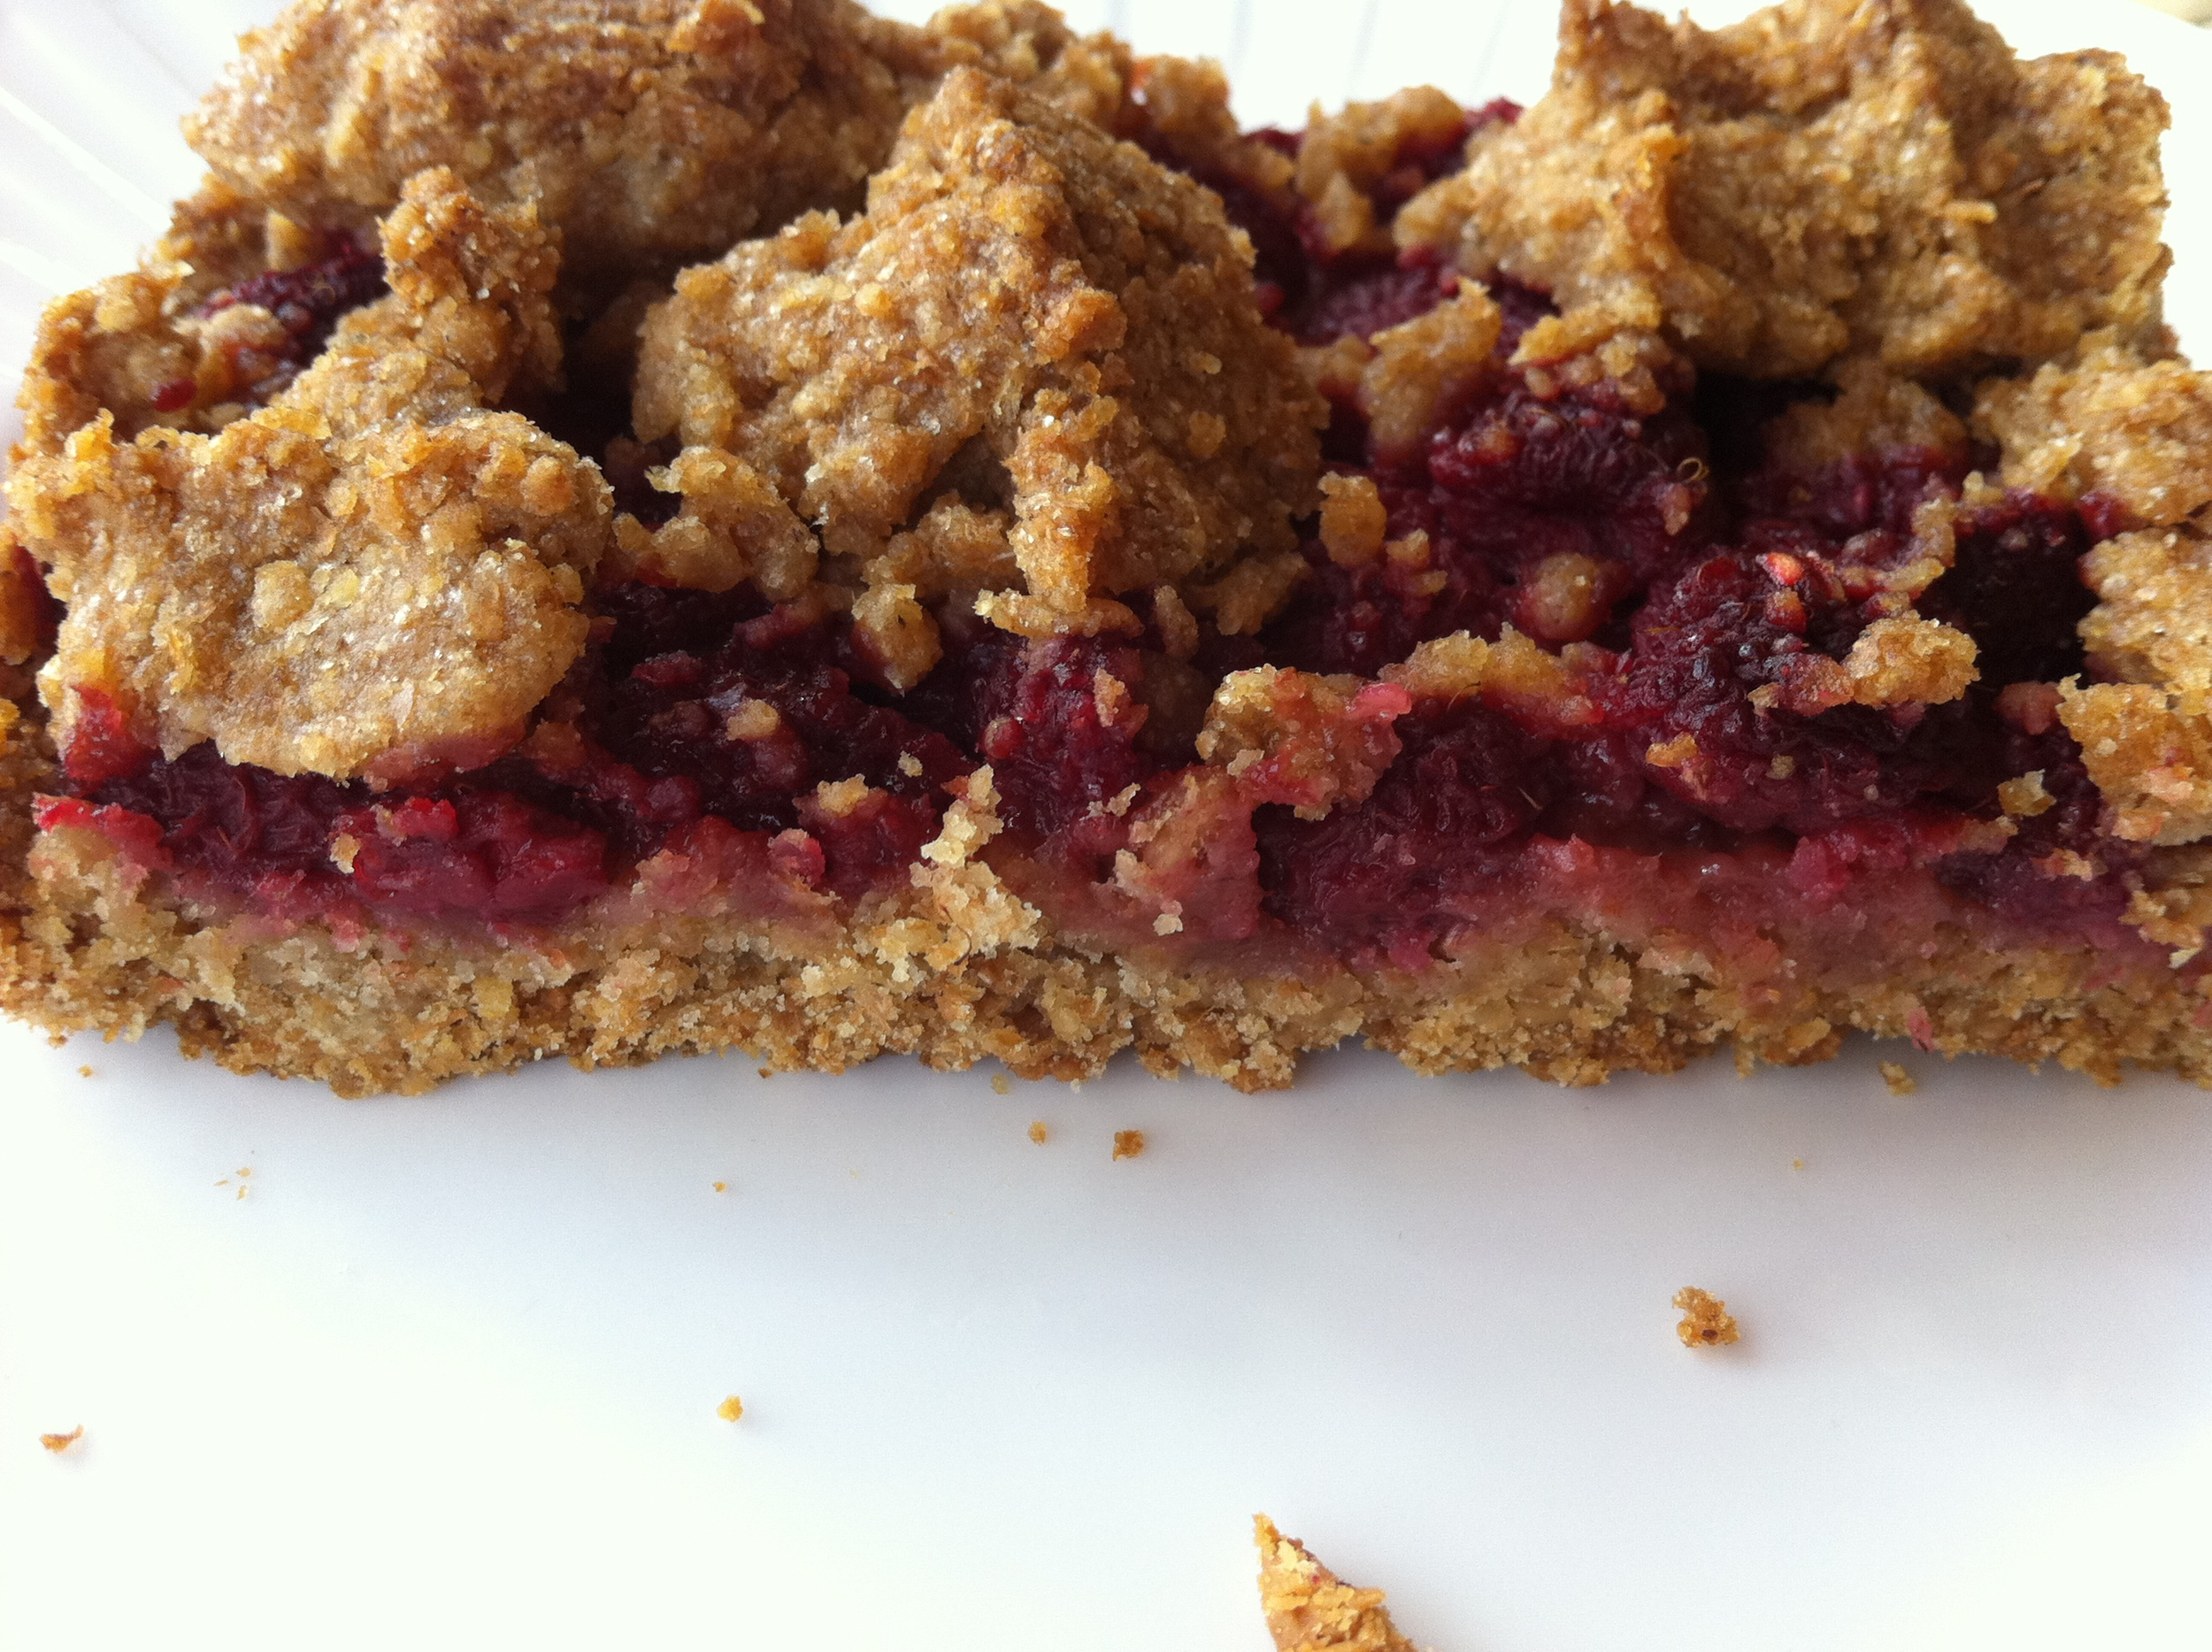 This vegan raspberry bar is delicious, healthy, and packed with fruit and nut butter!